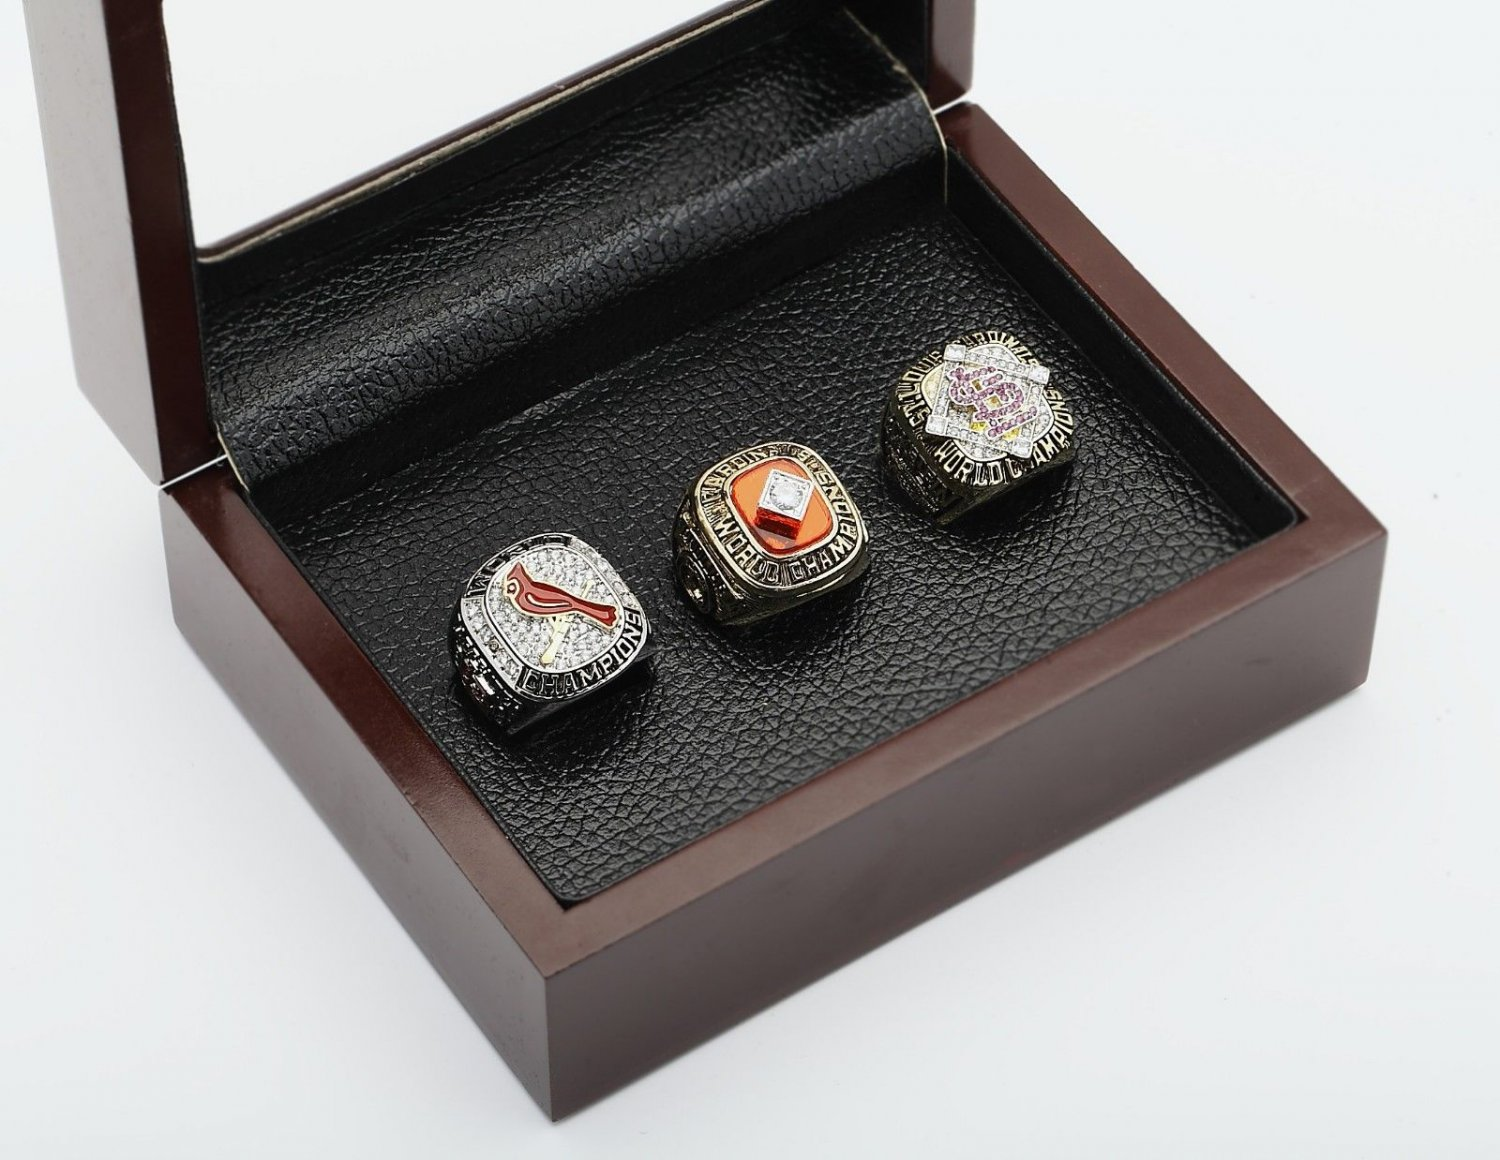 3pcs 1982 2006 2011 ST LOUIS CARDINALS World Series Championship Ring Size 10-13+ wooden case